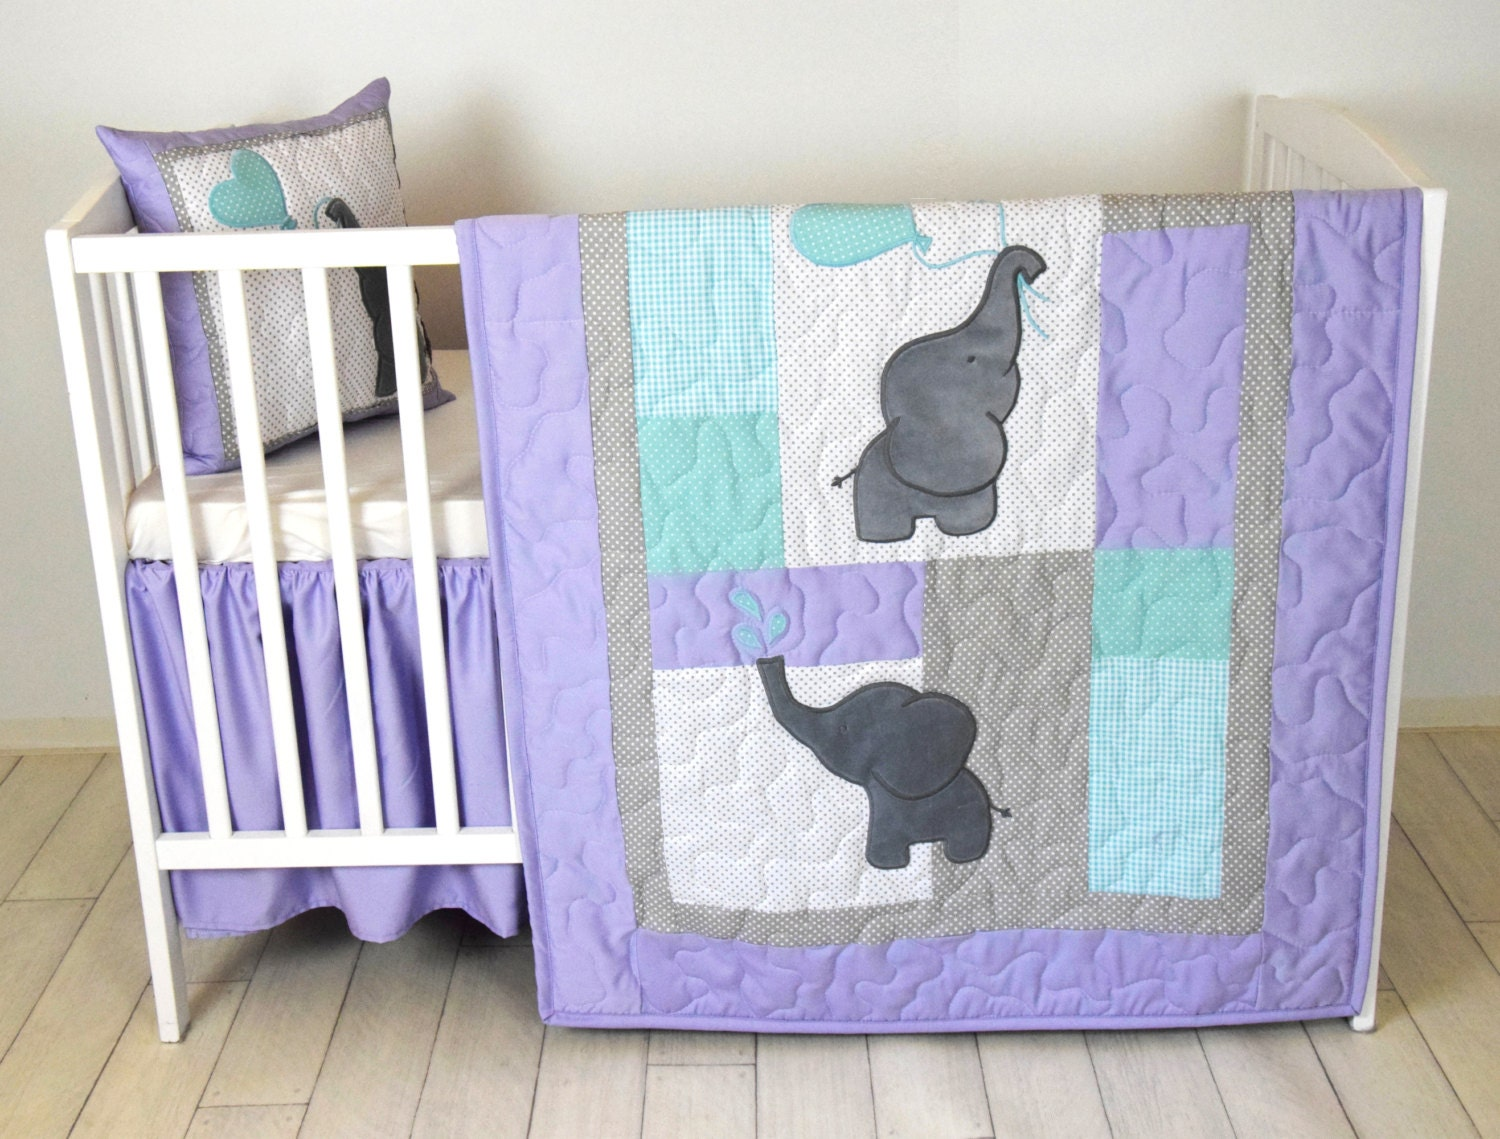 Baby Quilt Elephant Blanket Teal Purple Gray Crib Bedding